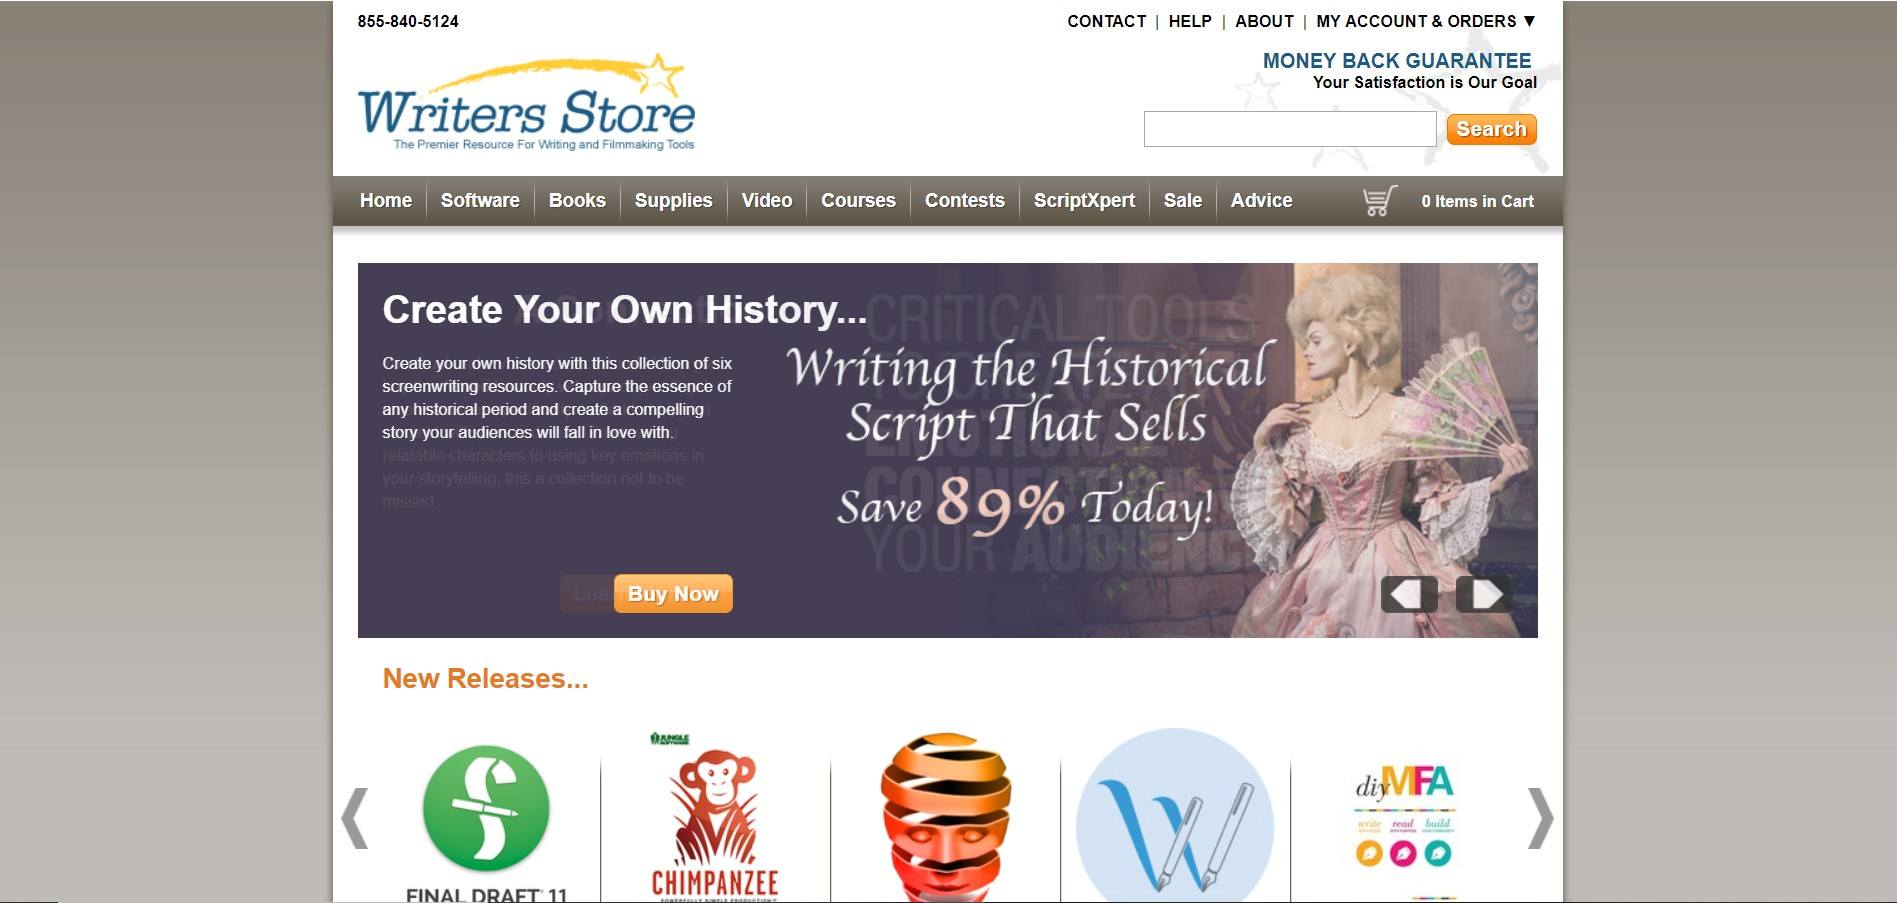 This screenshot includes a photo of a woman in a historical ball gown and white text inviting readers to create their own history.